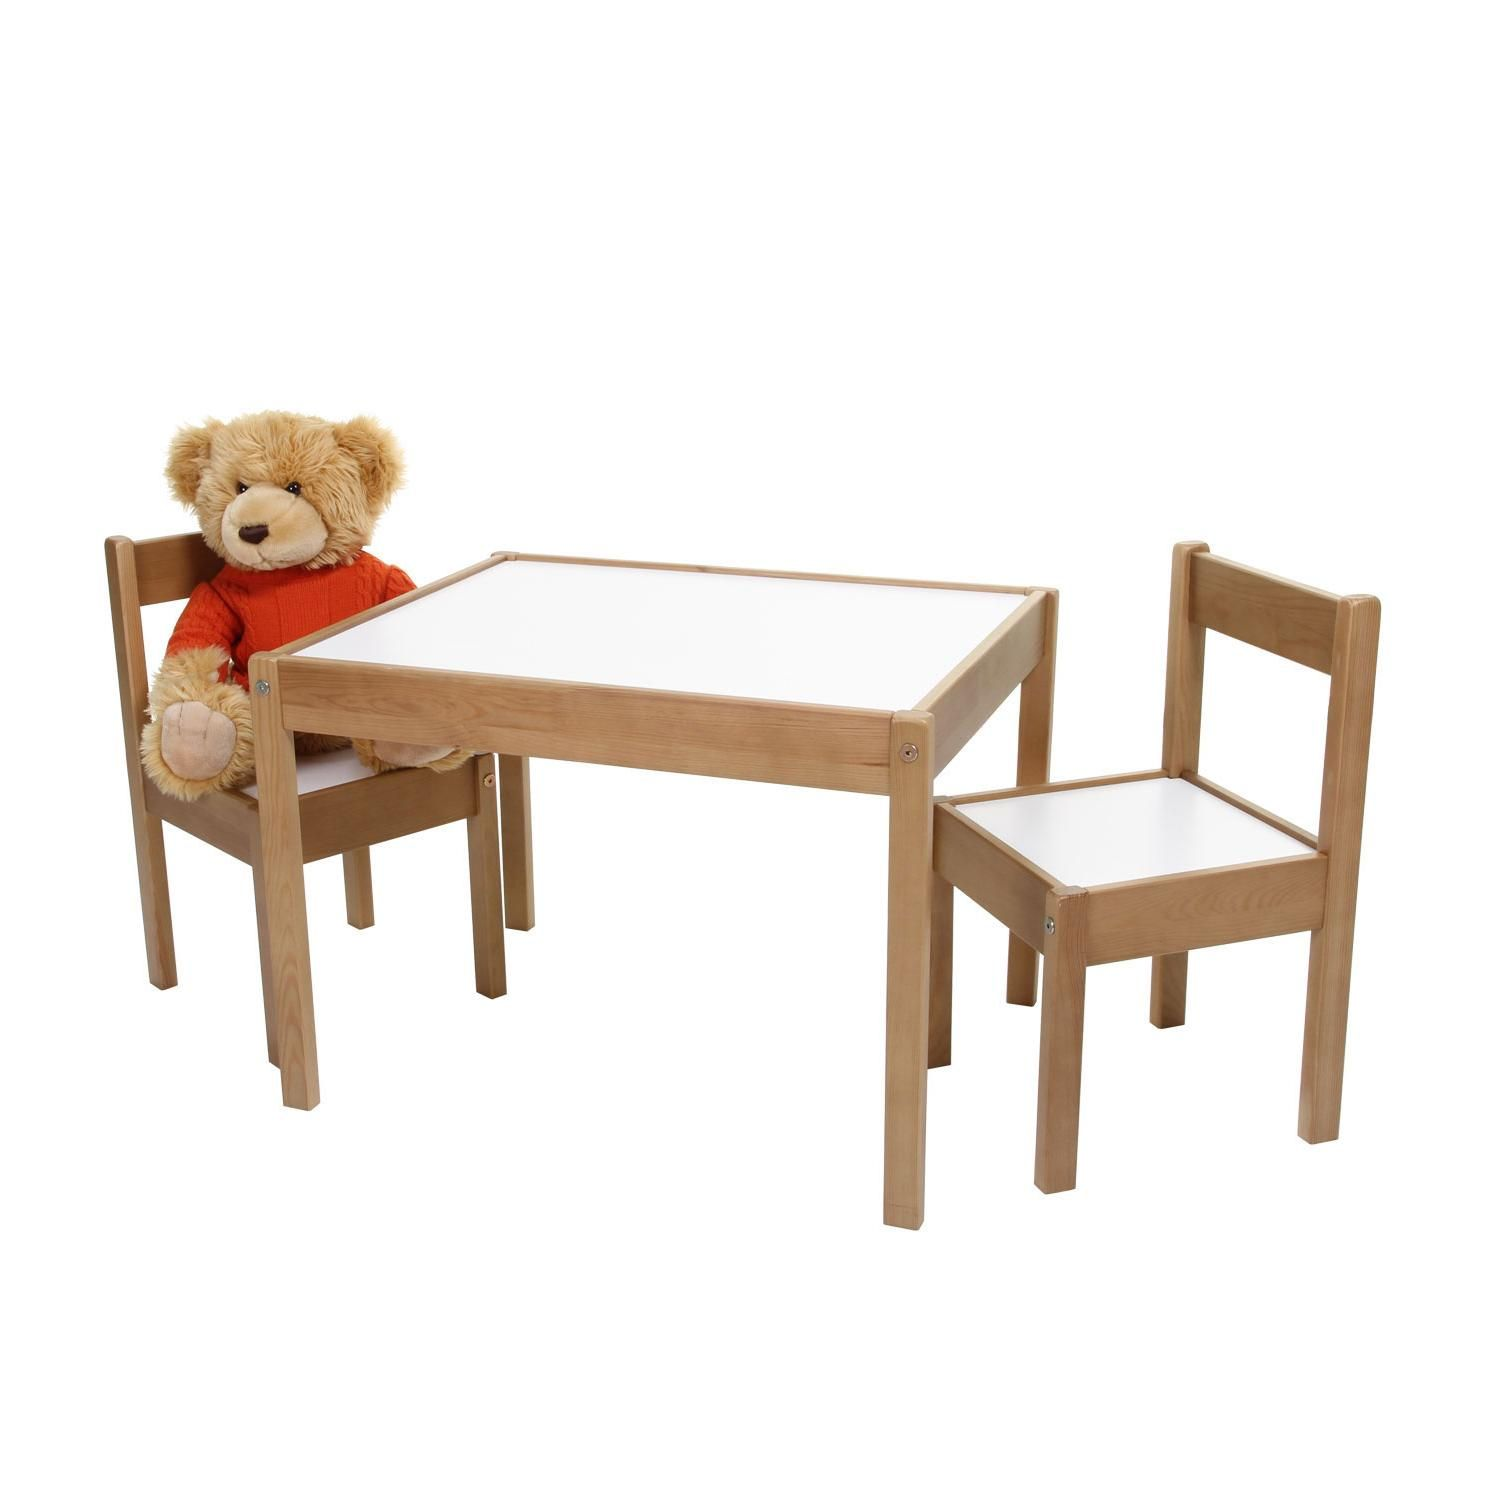 Exceptionnel Kiddicare Childrens Table And 2 Chairs Set   Kiddicare